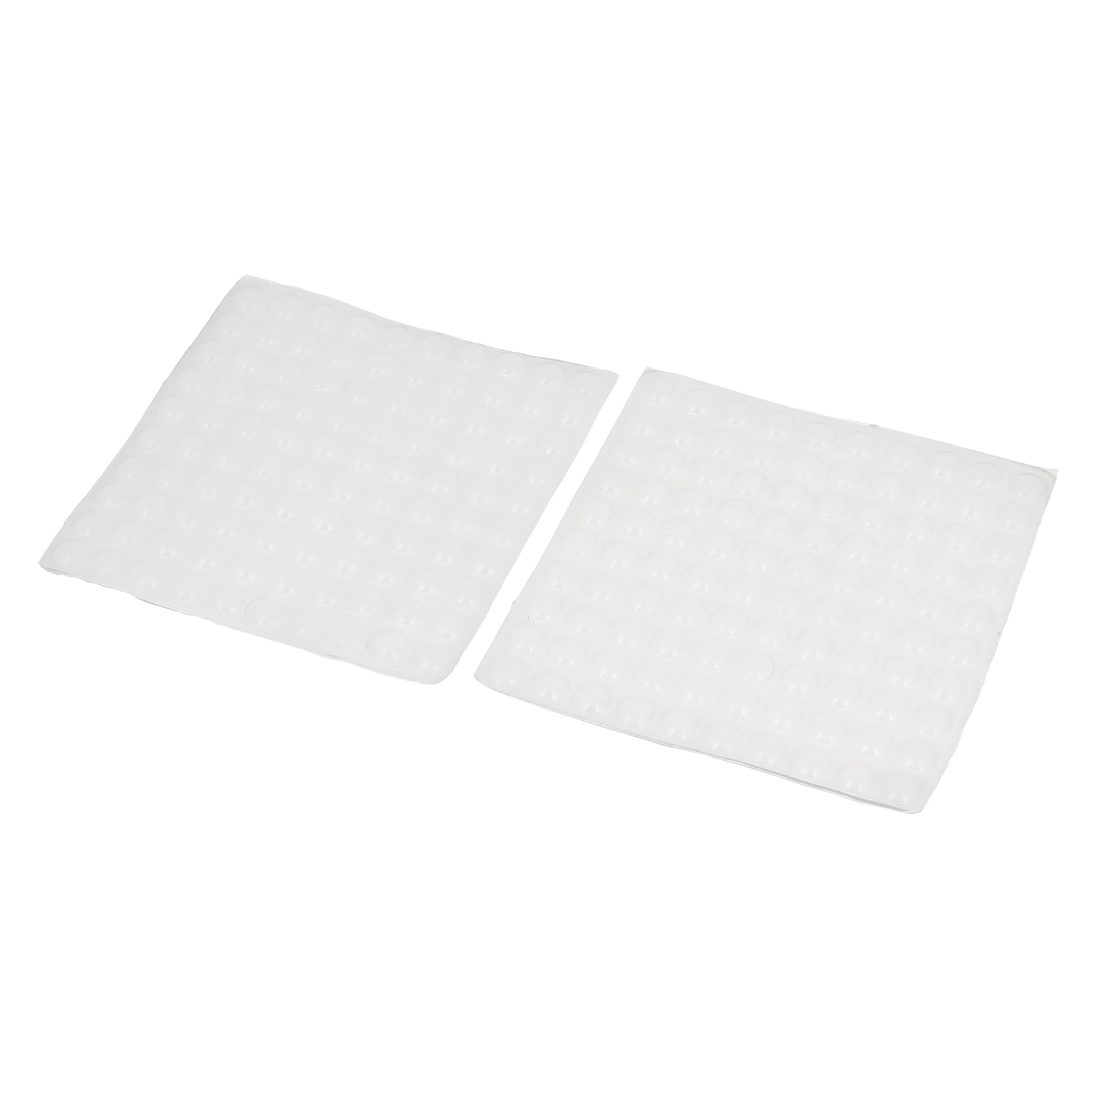 8mm Dia Self-adhesive Kitchen Cabinet Furniture Home Door Pad Protection 200Pcs